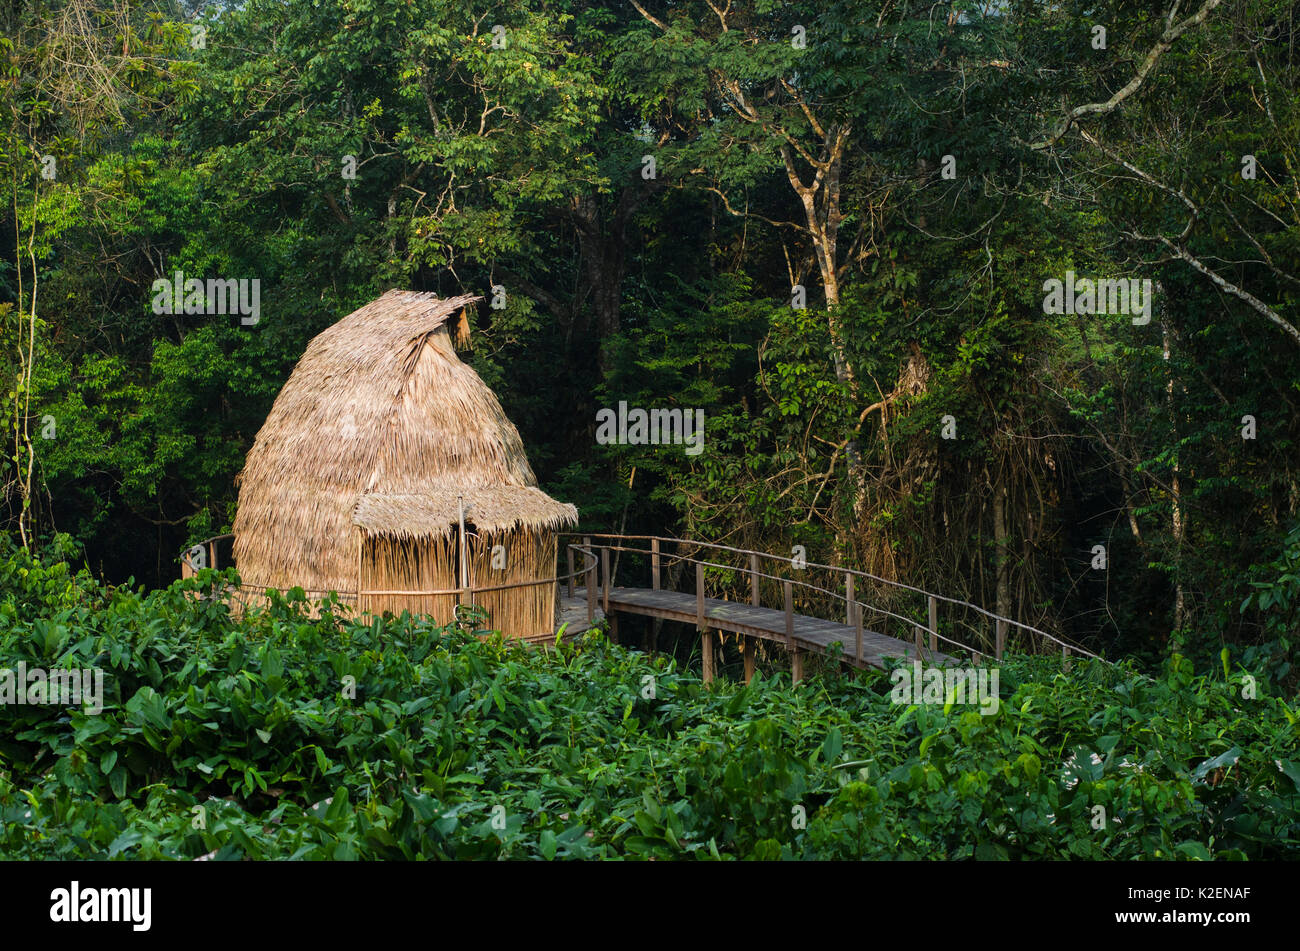 Guest cabin, Ngaga Camp, Republic of Congo (Congo-Brazzaville), Africa, May 2013. - Stock Image